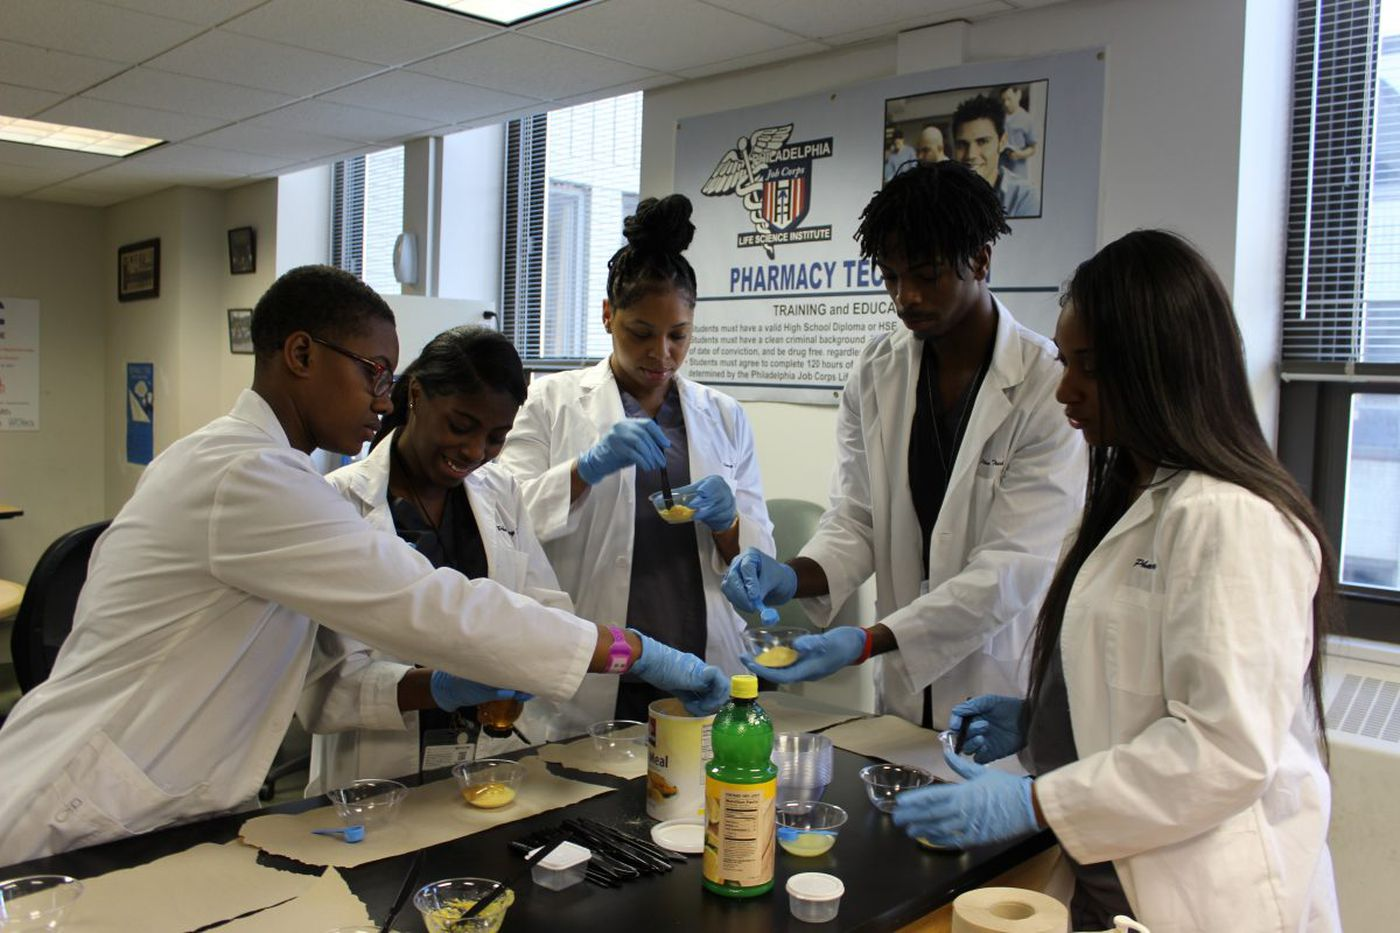 CVS launches Philly apprentice program to find more pharmacy techs